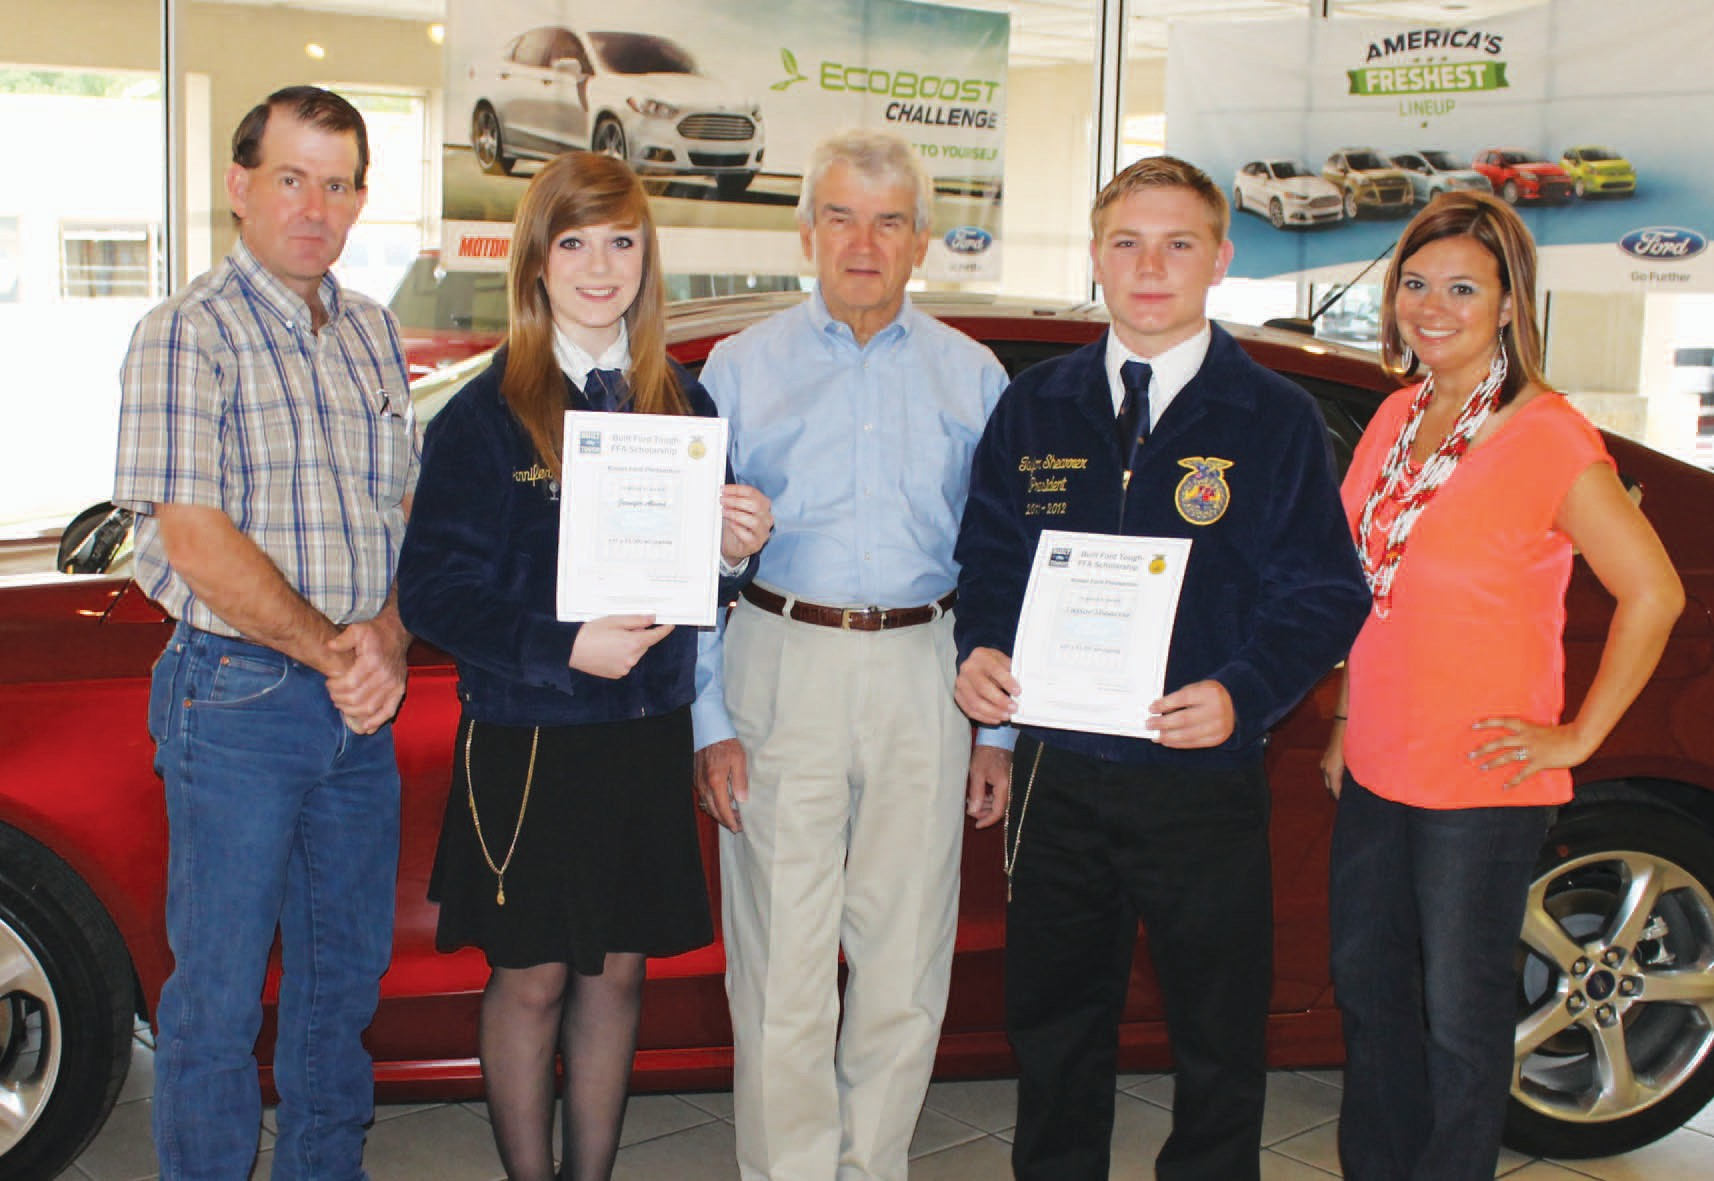 Jennifer Alvord and Taylor Shearrer were each recipients of a Built Ford Tough Scholarship. Pictured left to right are John Lanier, Jourdanton FFA Advisor, Jennifer Alvord, Bob Kinsel, Taylor Shearrer and Amanda Hargrove, Pleasanton FFA Advisor.